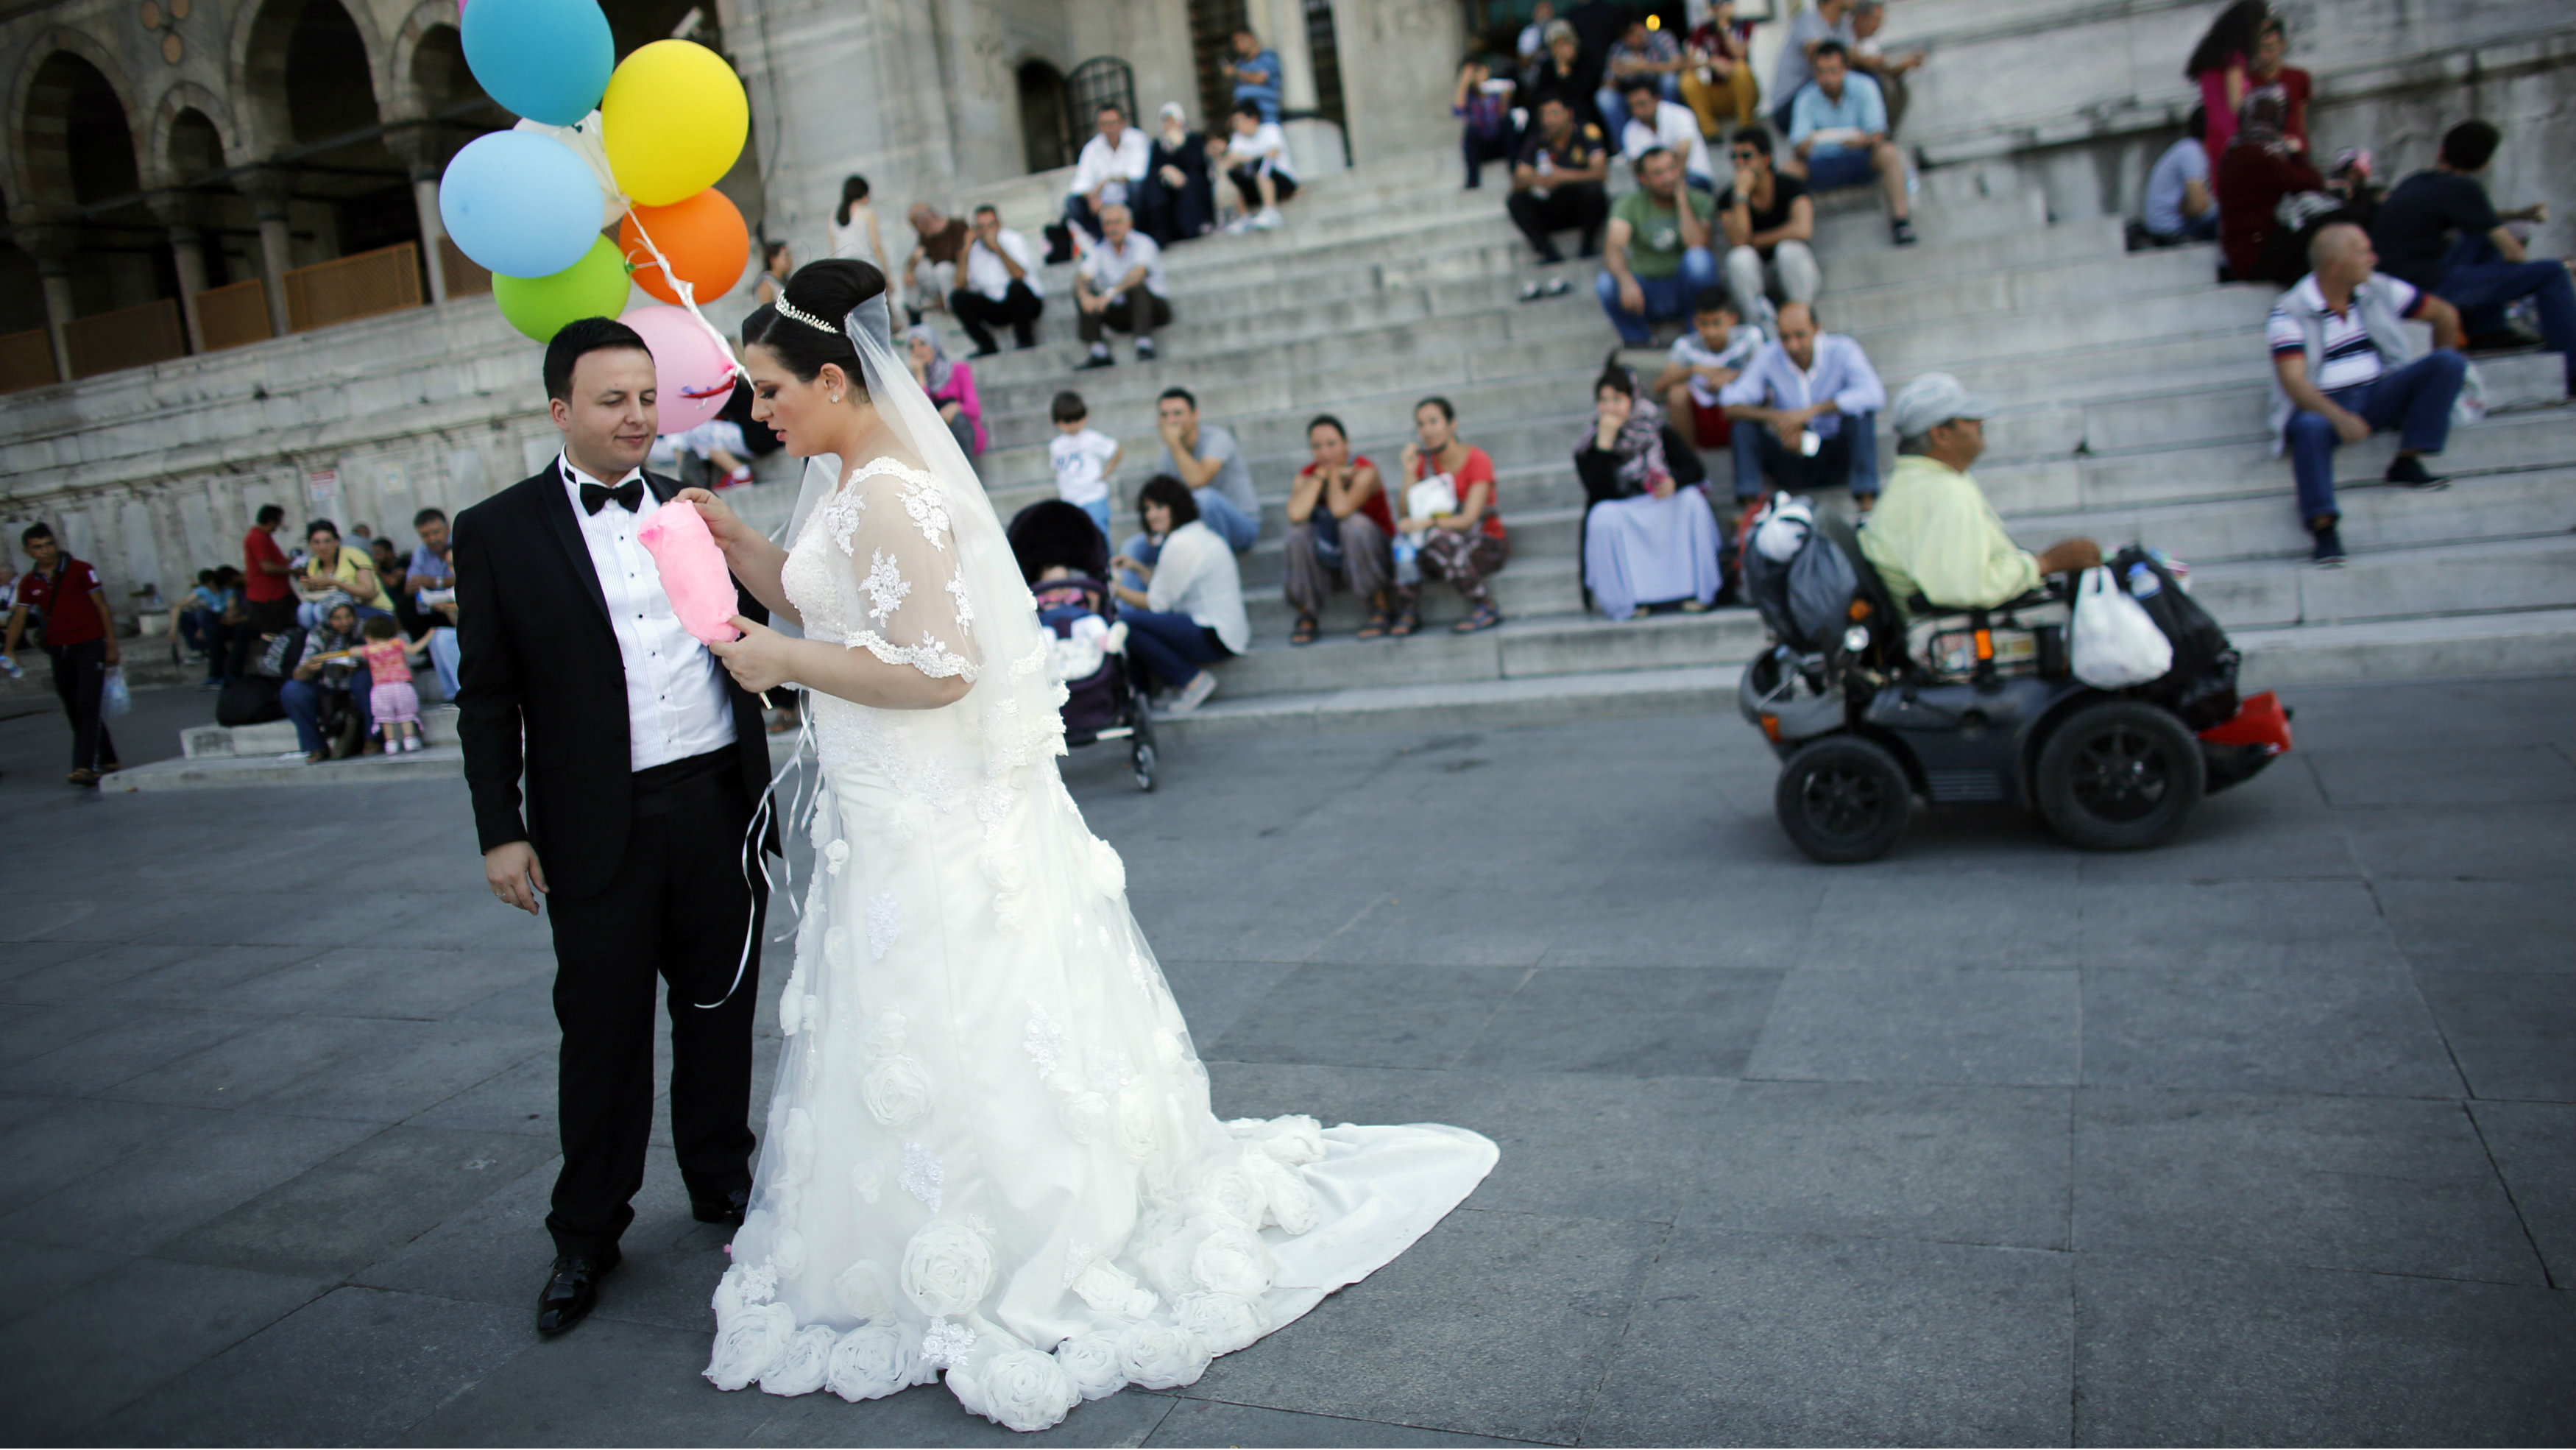 Bride Mutlu and groom Ihsan Baran pose for their photographer in front of the New mosque at Eminonu square in Istanbul September 11, 2014. REUTERS/Murad Sezer (TURKEY - Tags: SOCIETY)